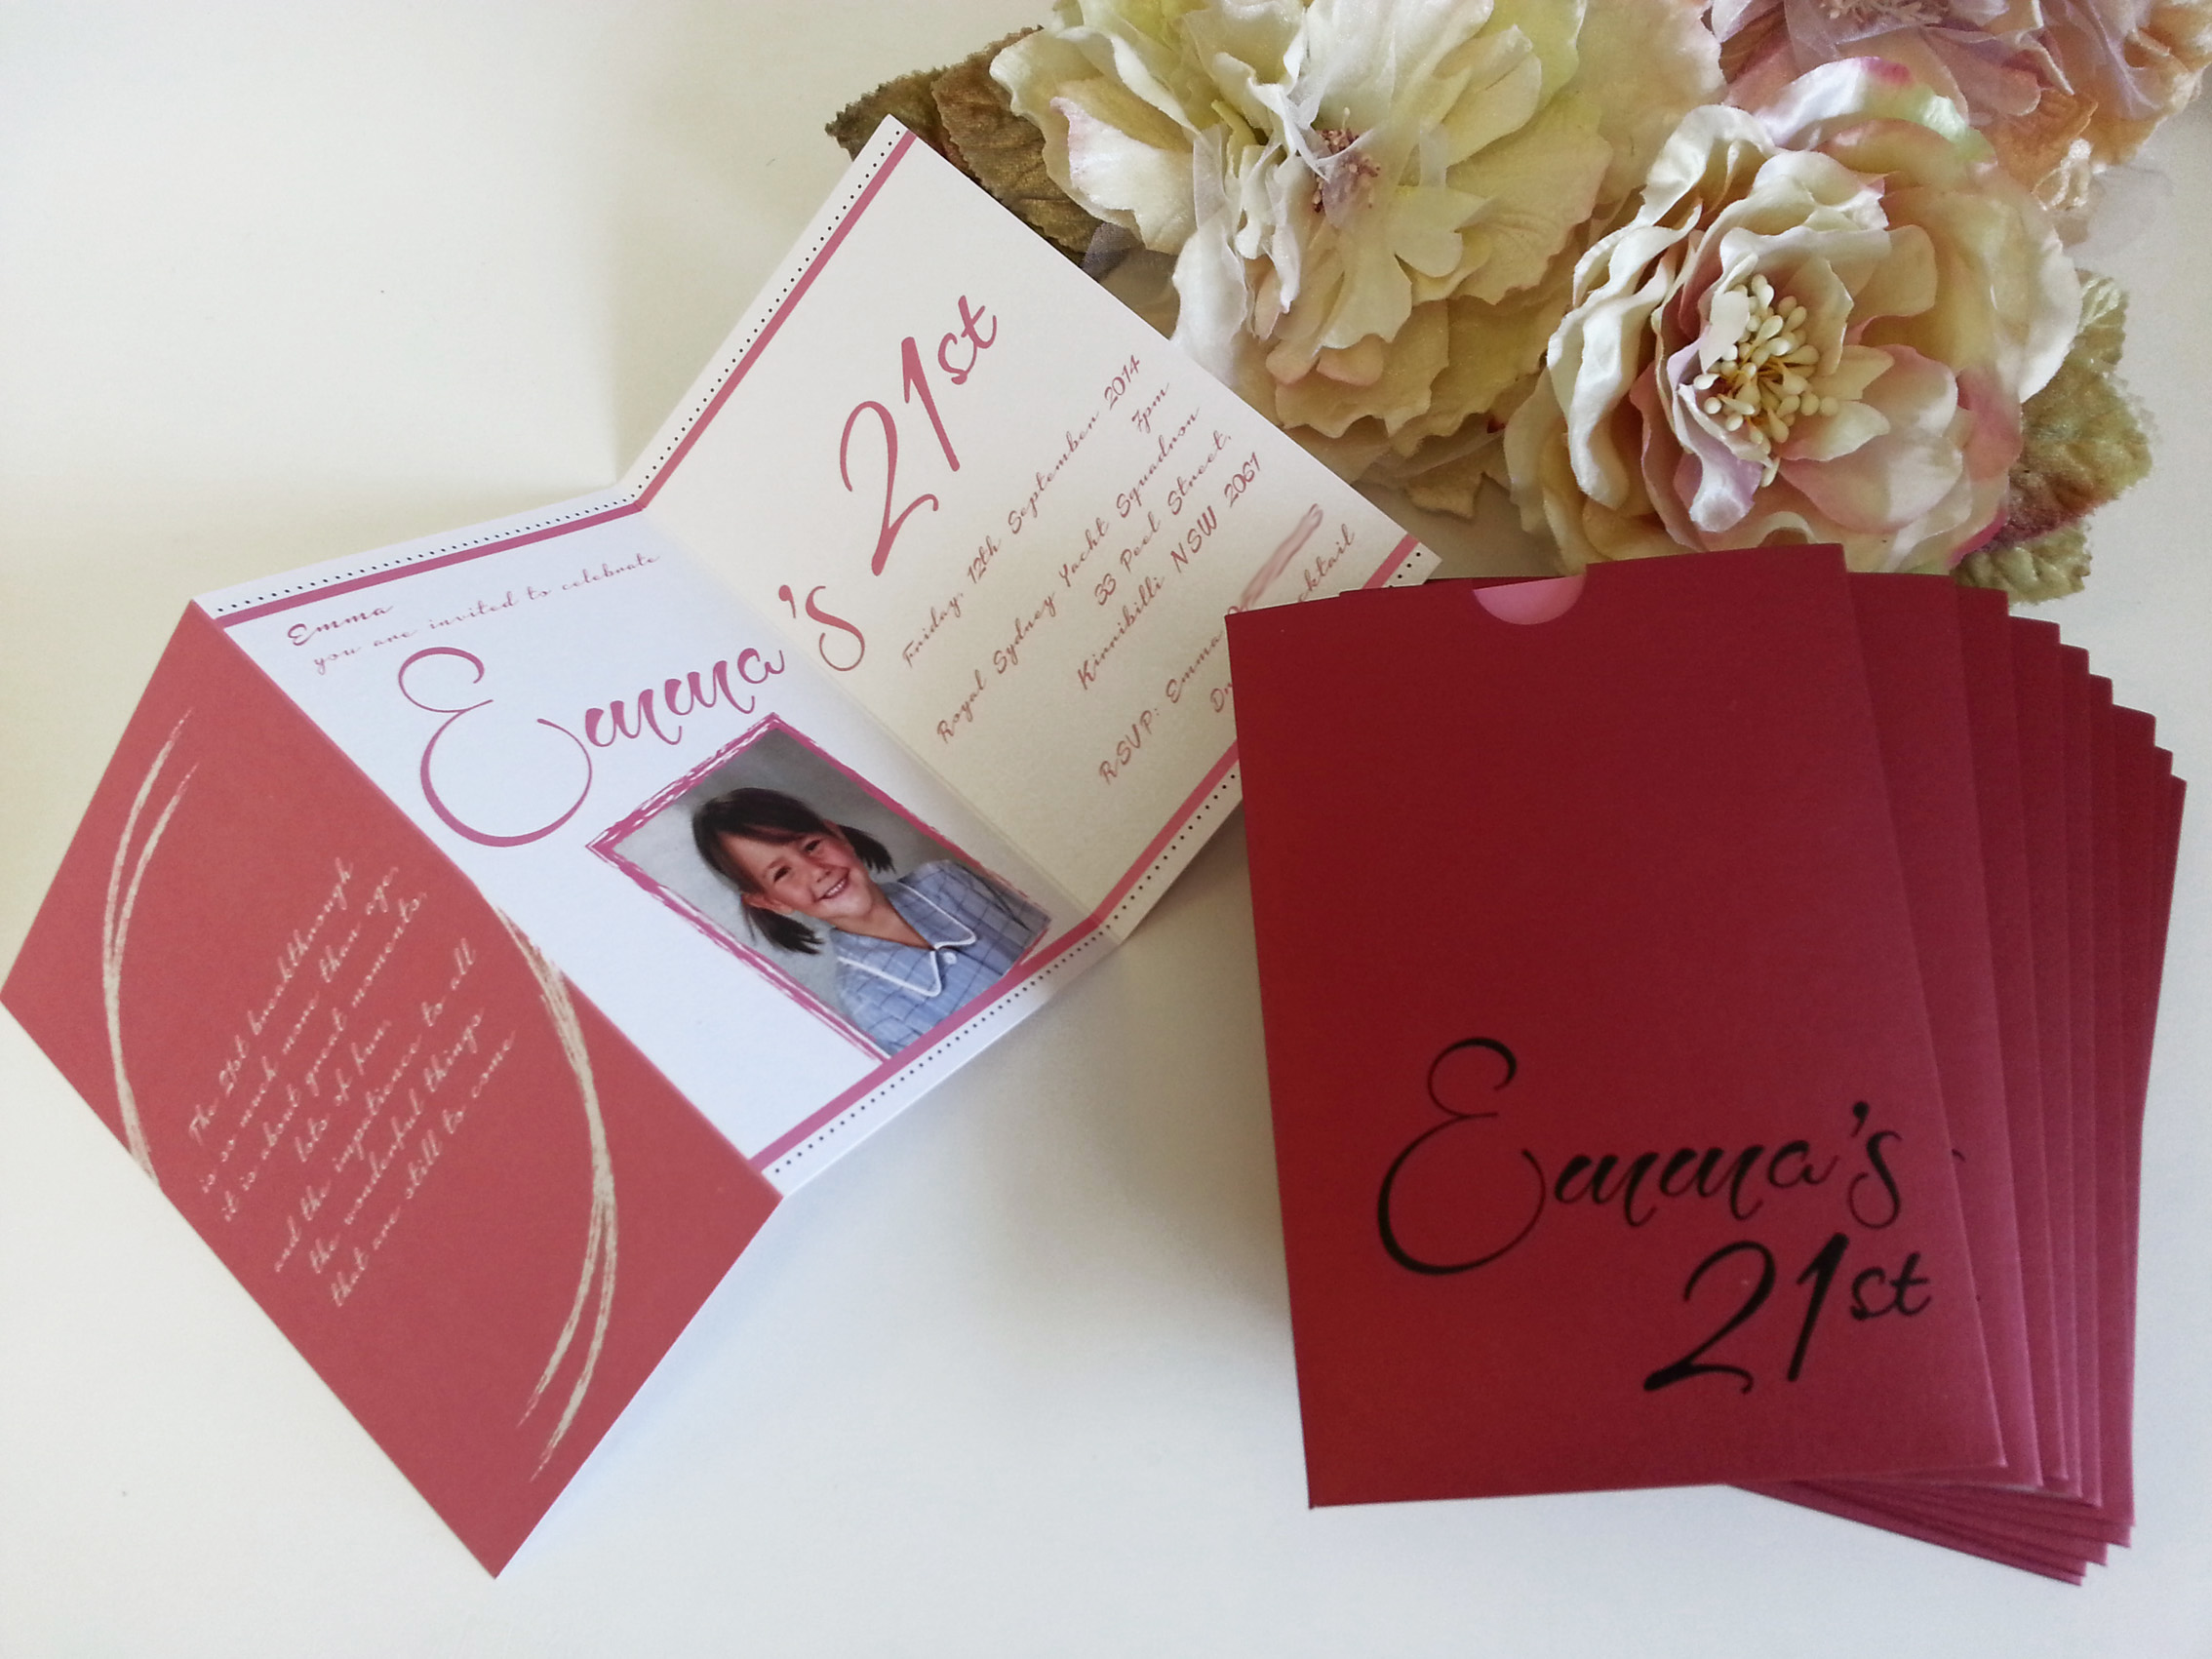 21st birthday pocket sleeves trifold invitations sydney.jpg